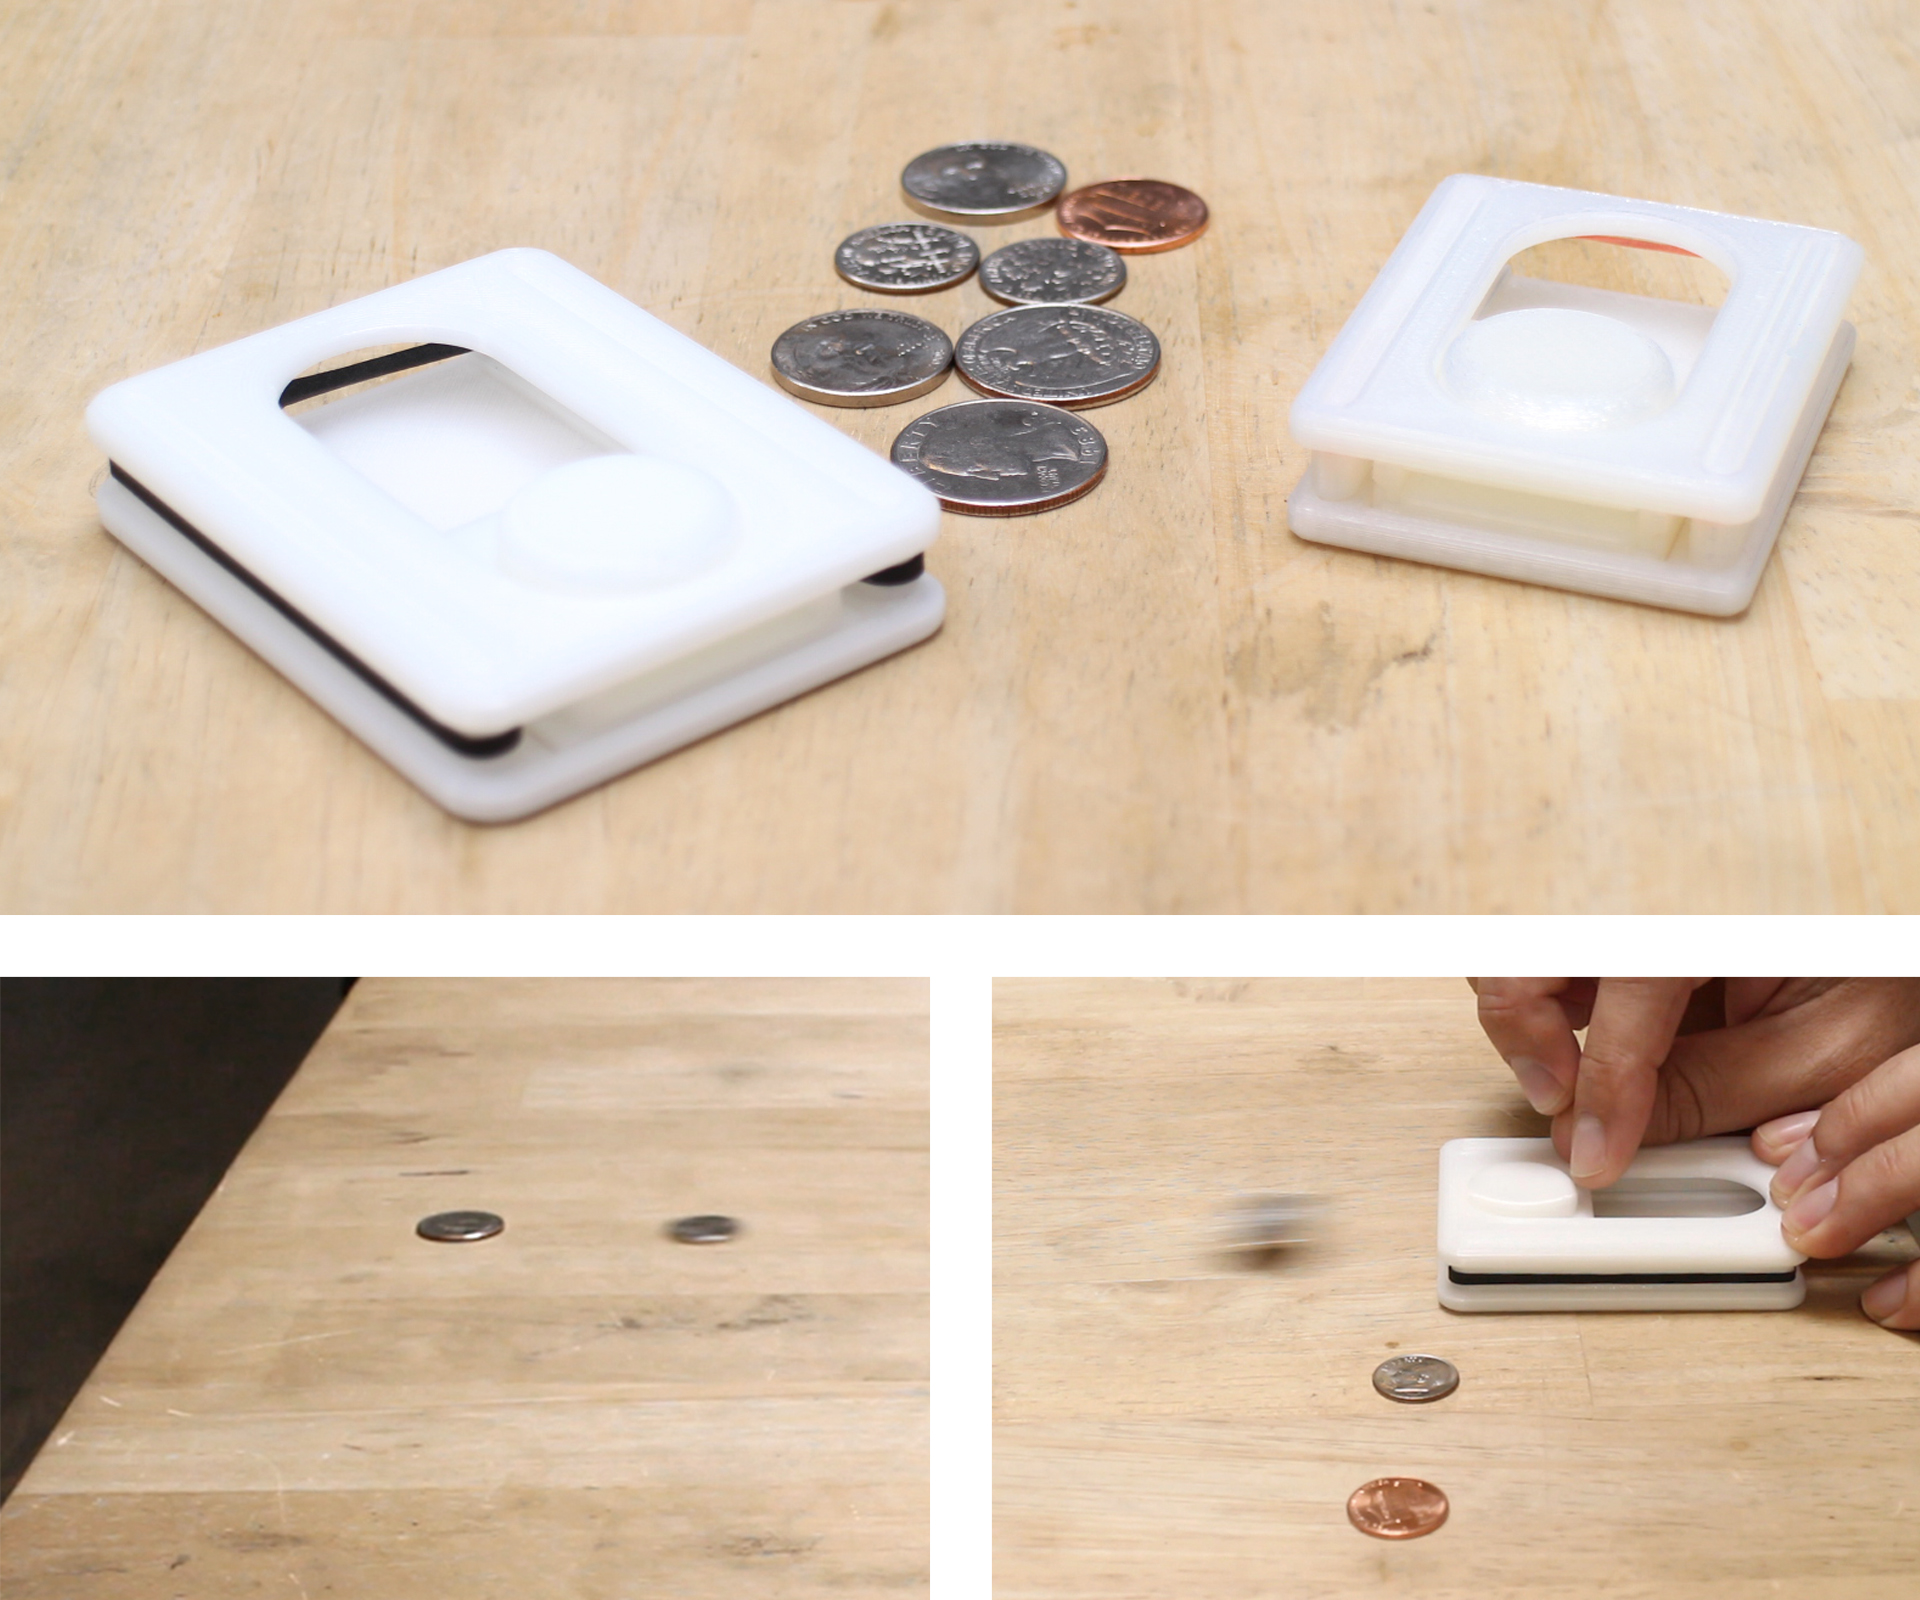 Picture of 3D Printed Coin Shuffleboard